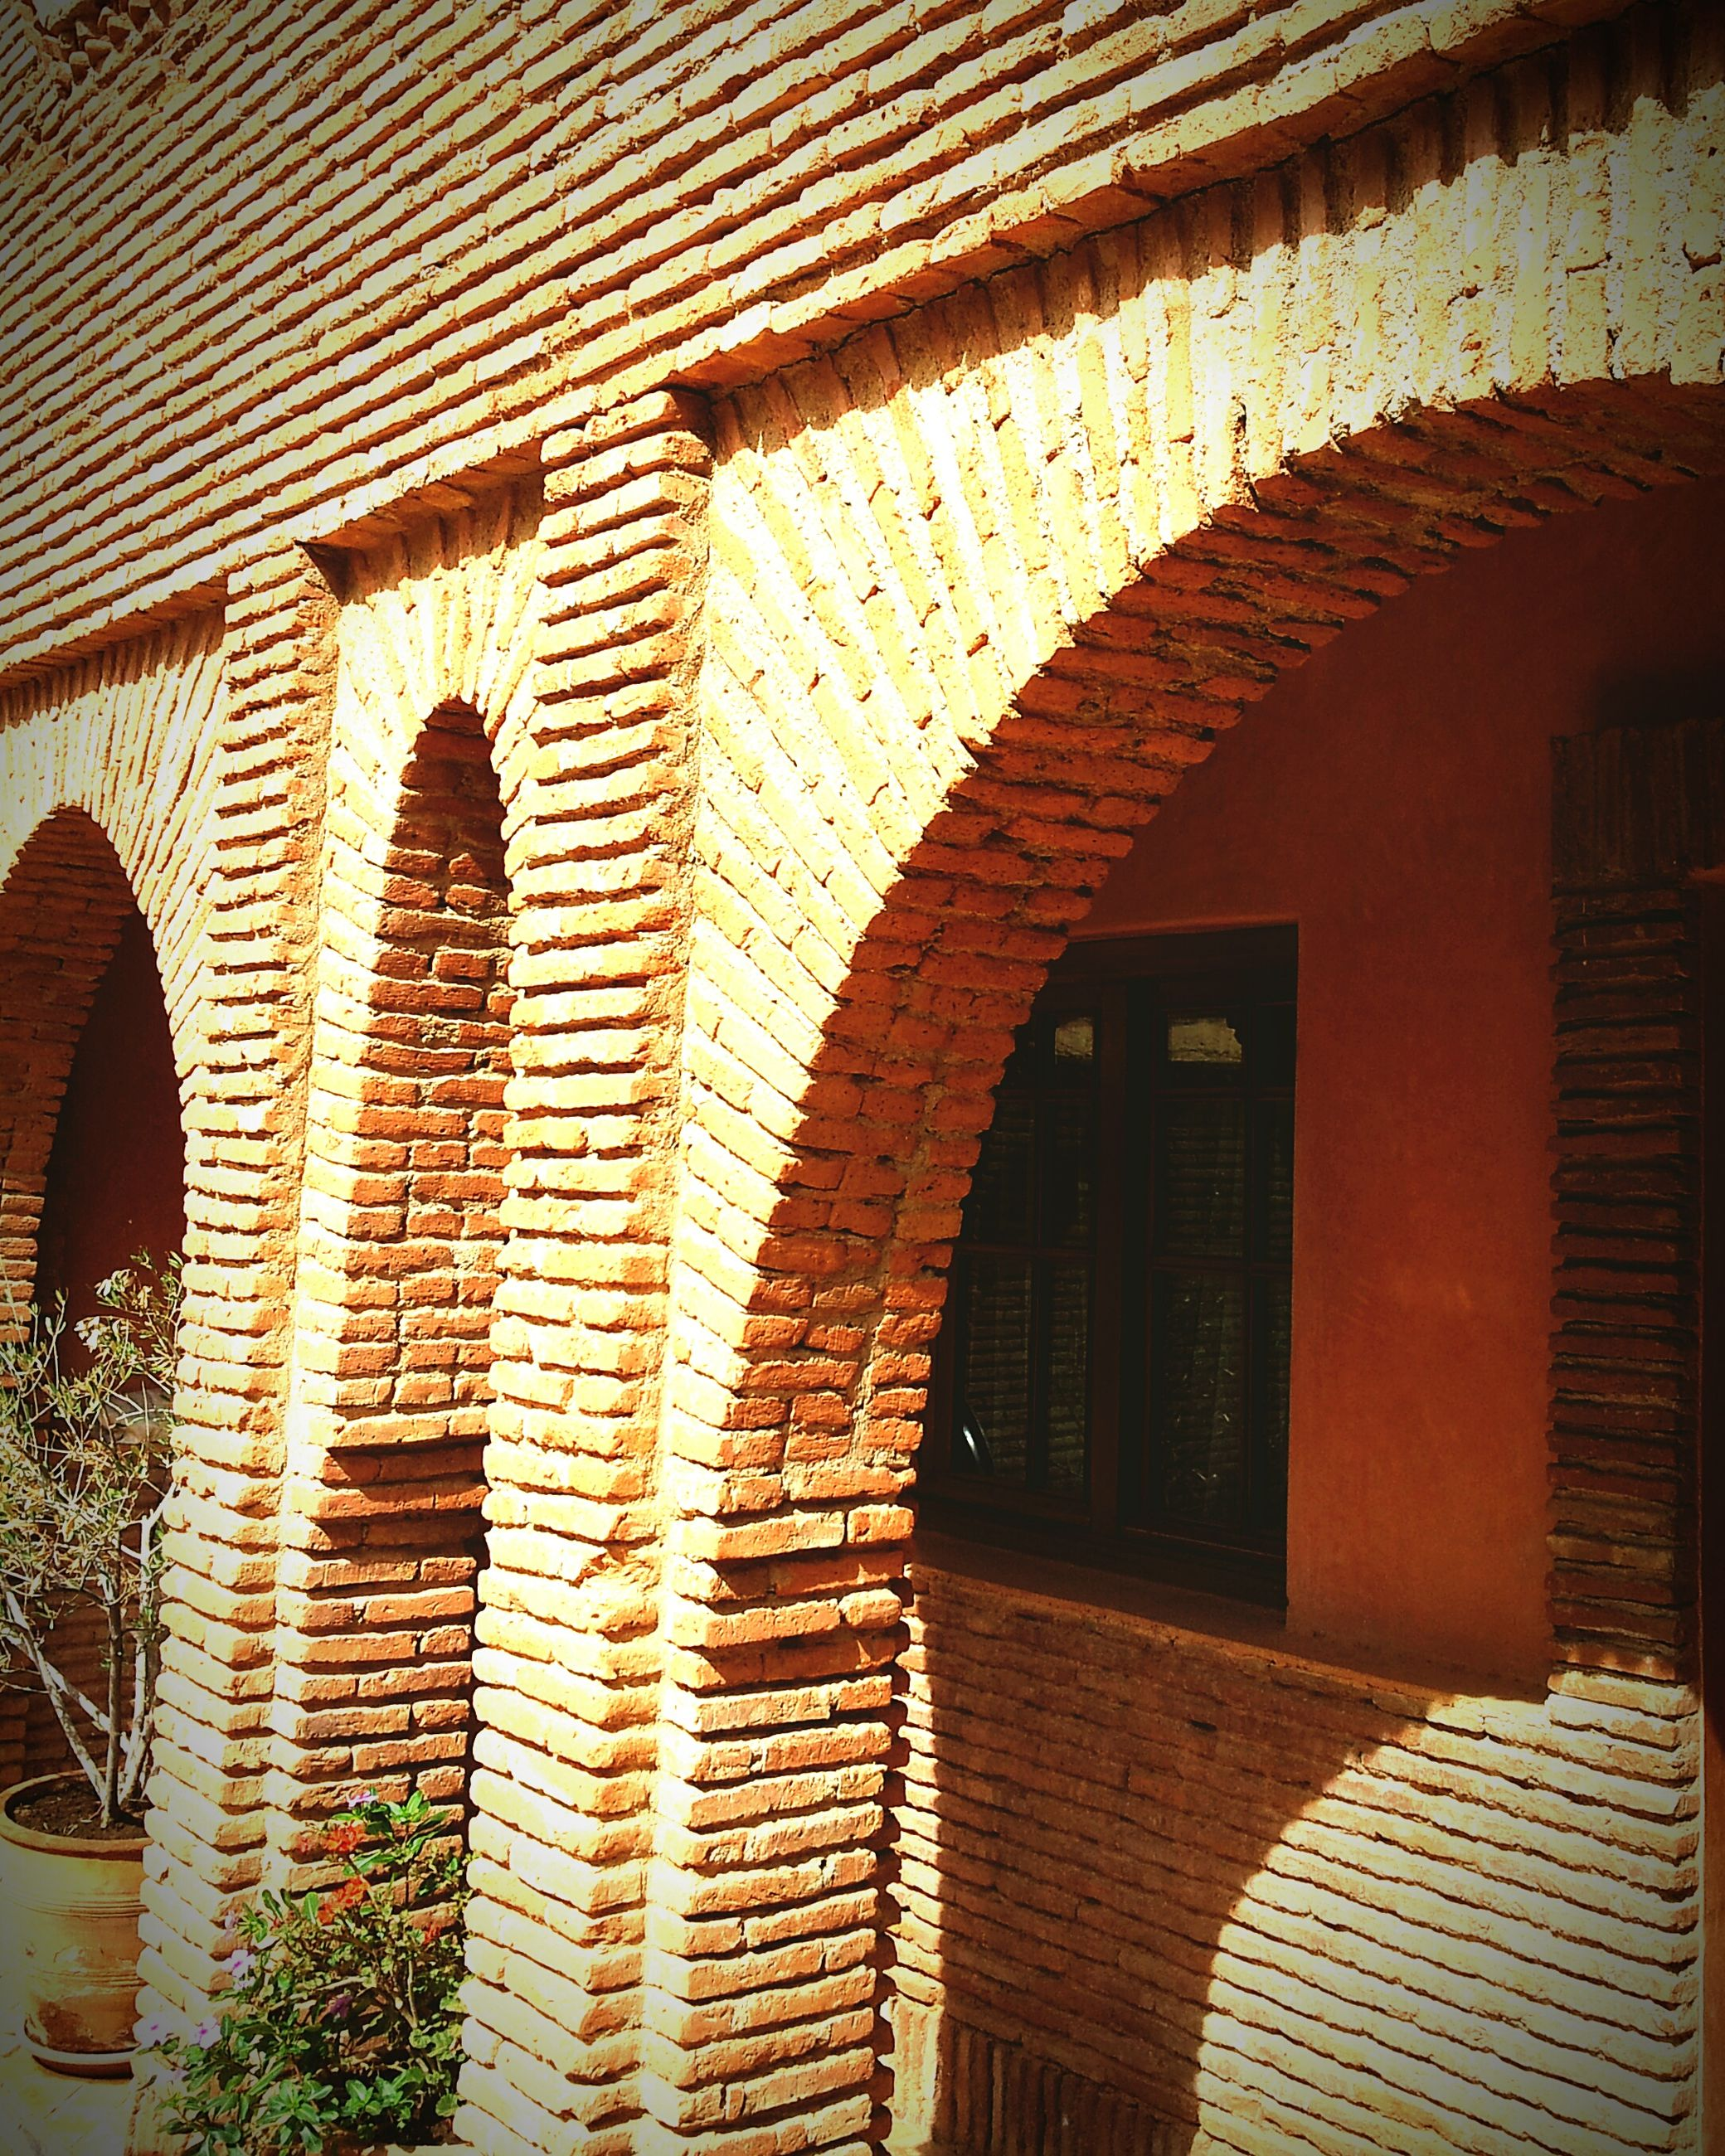 architecture, built structure, arch, building exterior, window, brick wall, building, residential building, residential structure, house, wall - building feature, no people, steps, day, old, sunlight, outdoors, in a row, wall